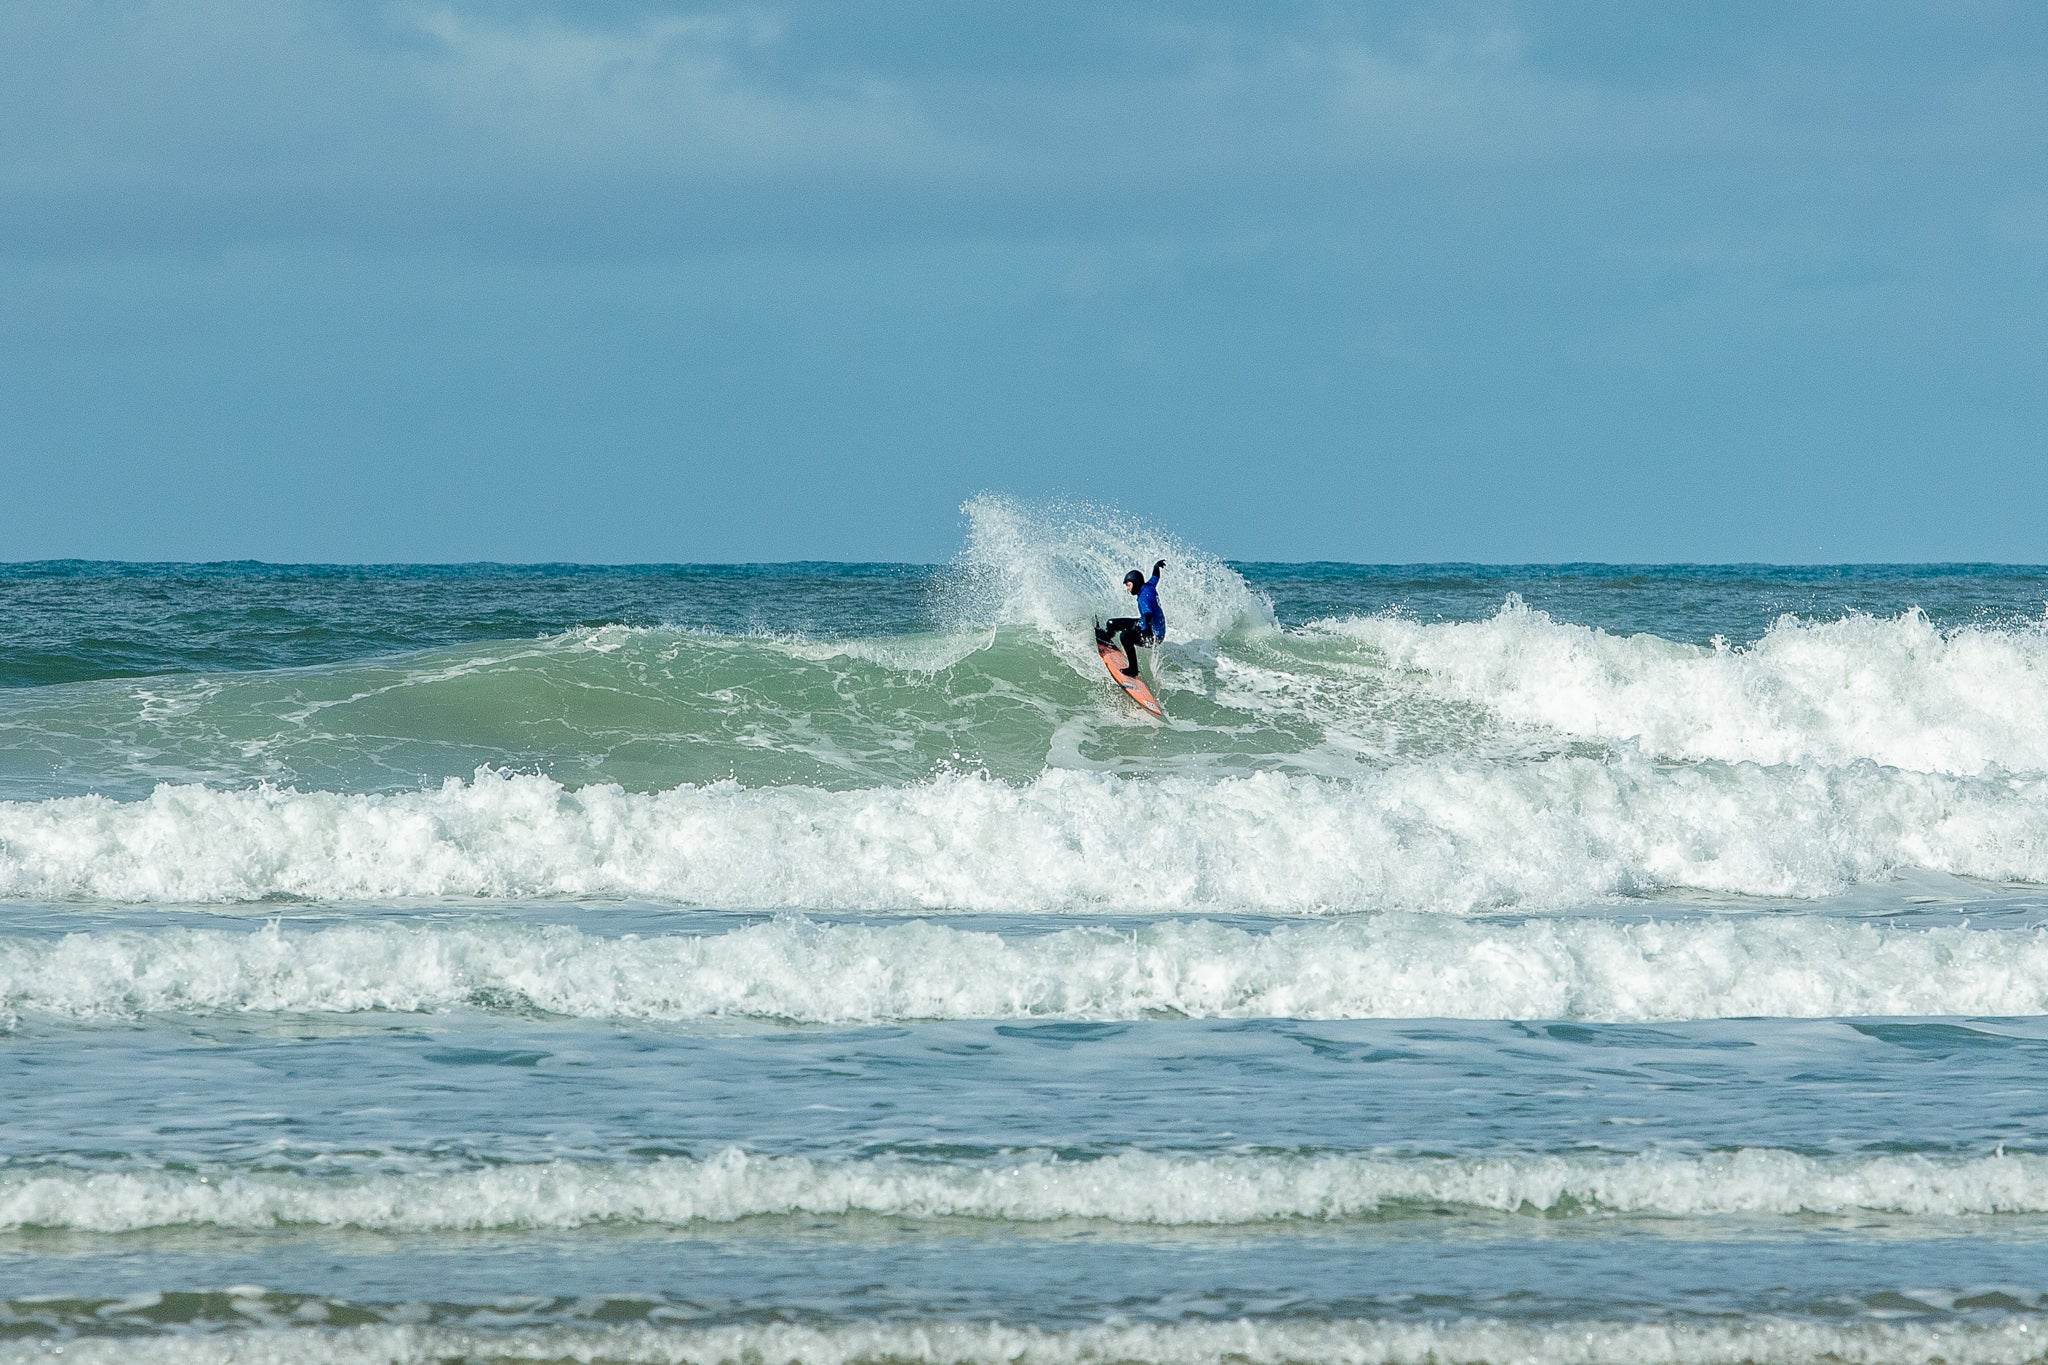 Action from the 2020 English Surf Champs